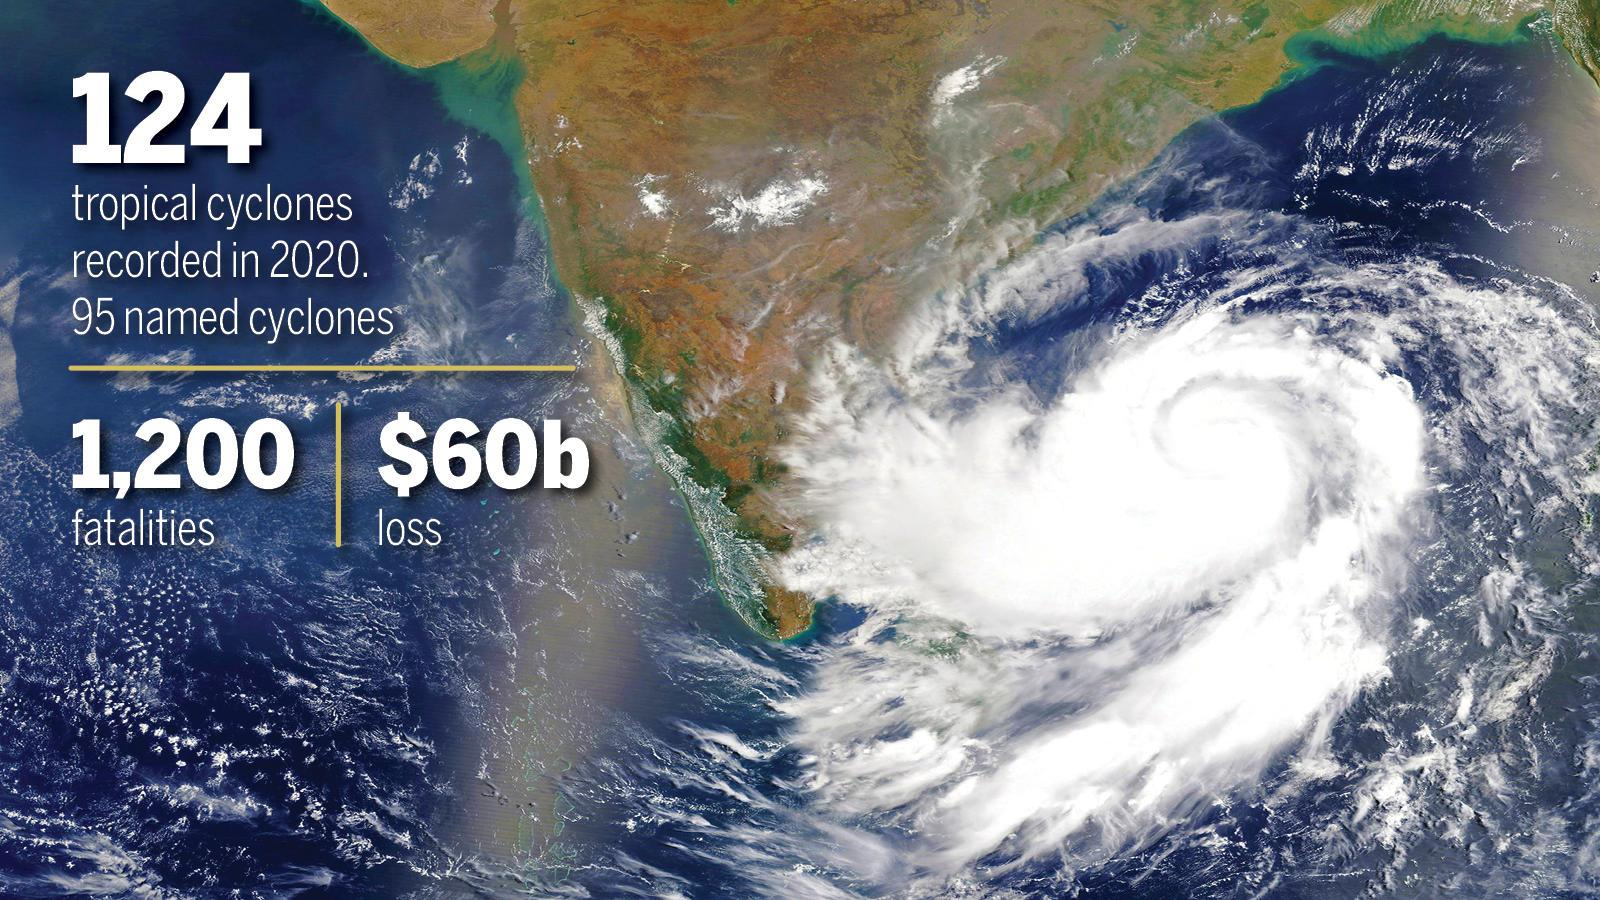 Cyclones in India: Why cyclones are becoming severe - Times of India